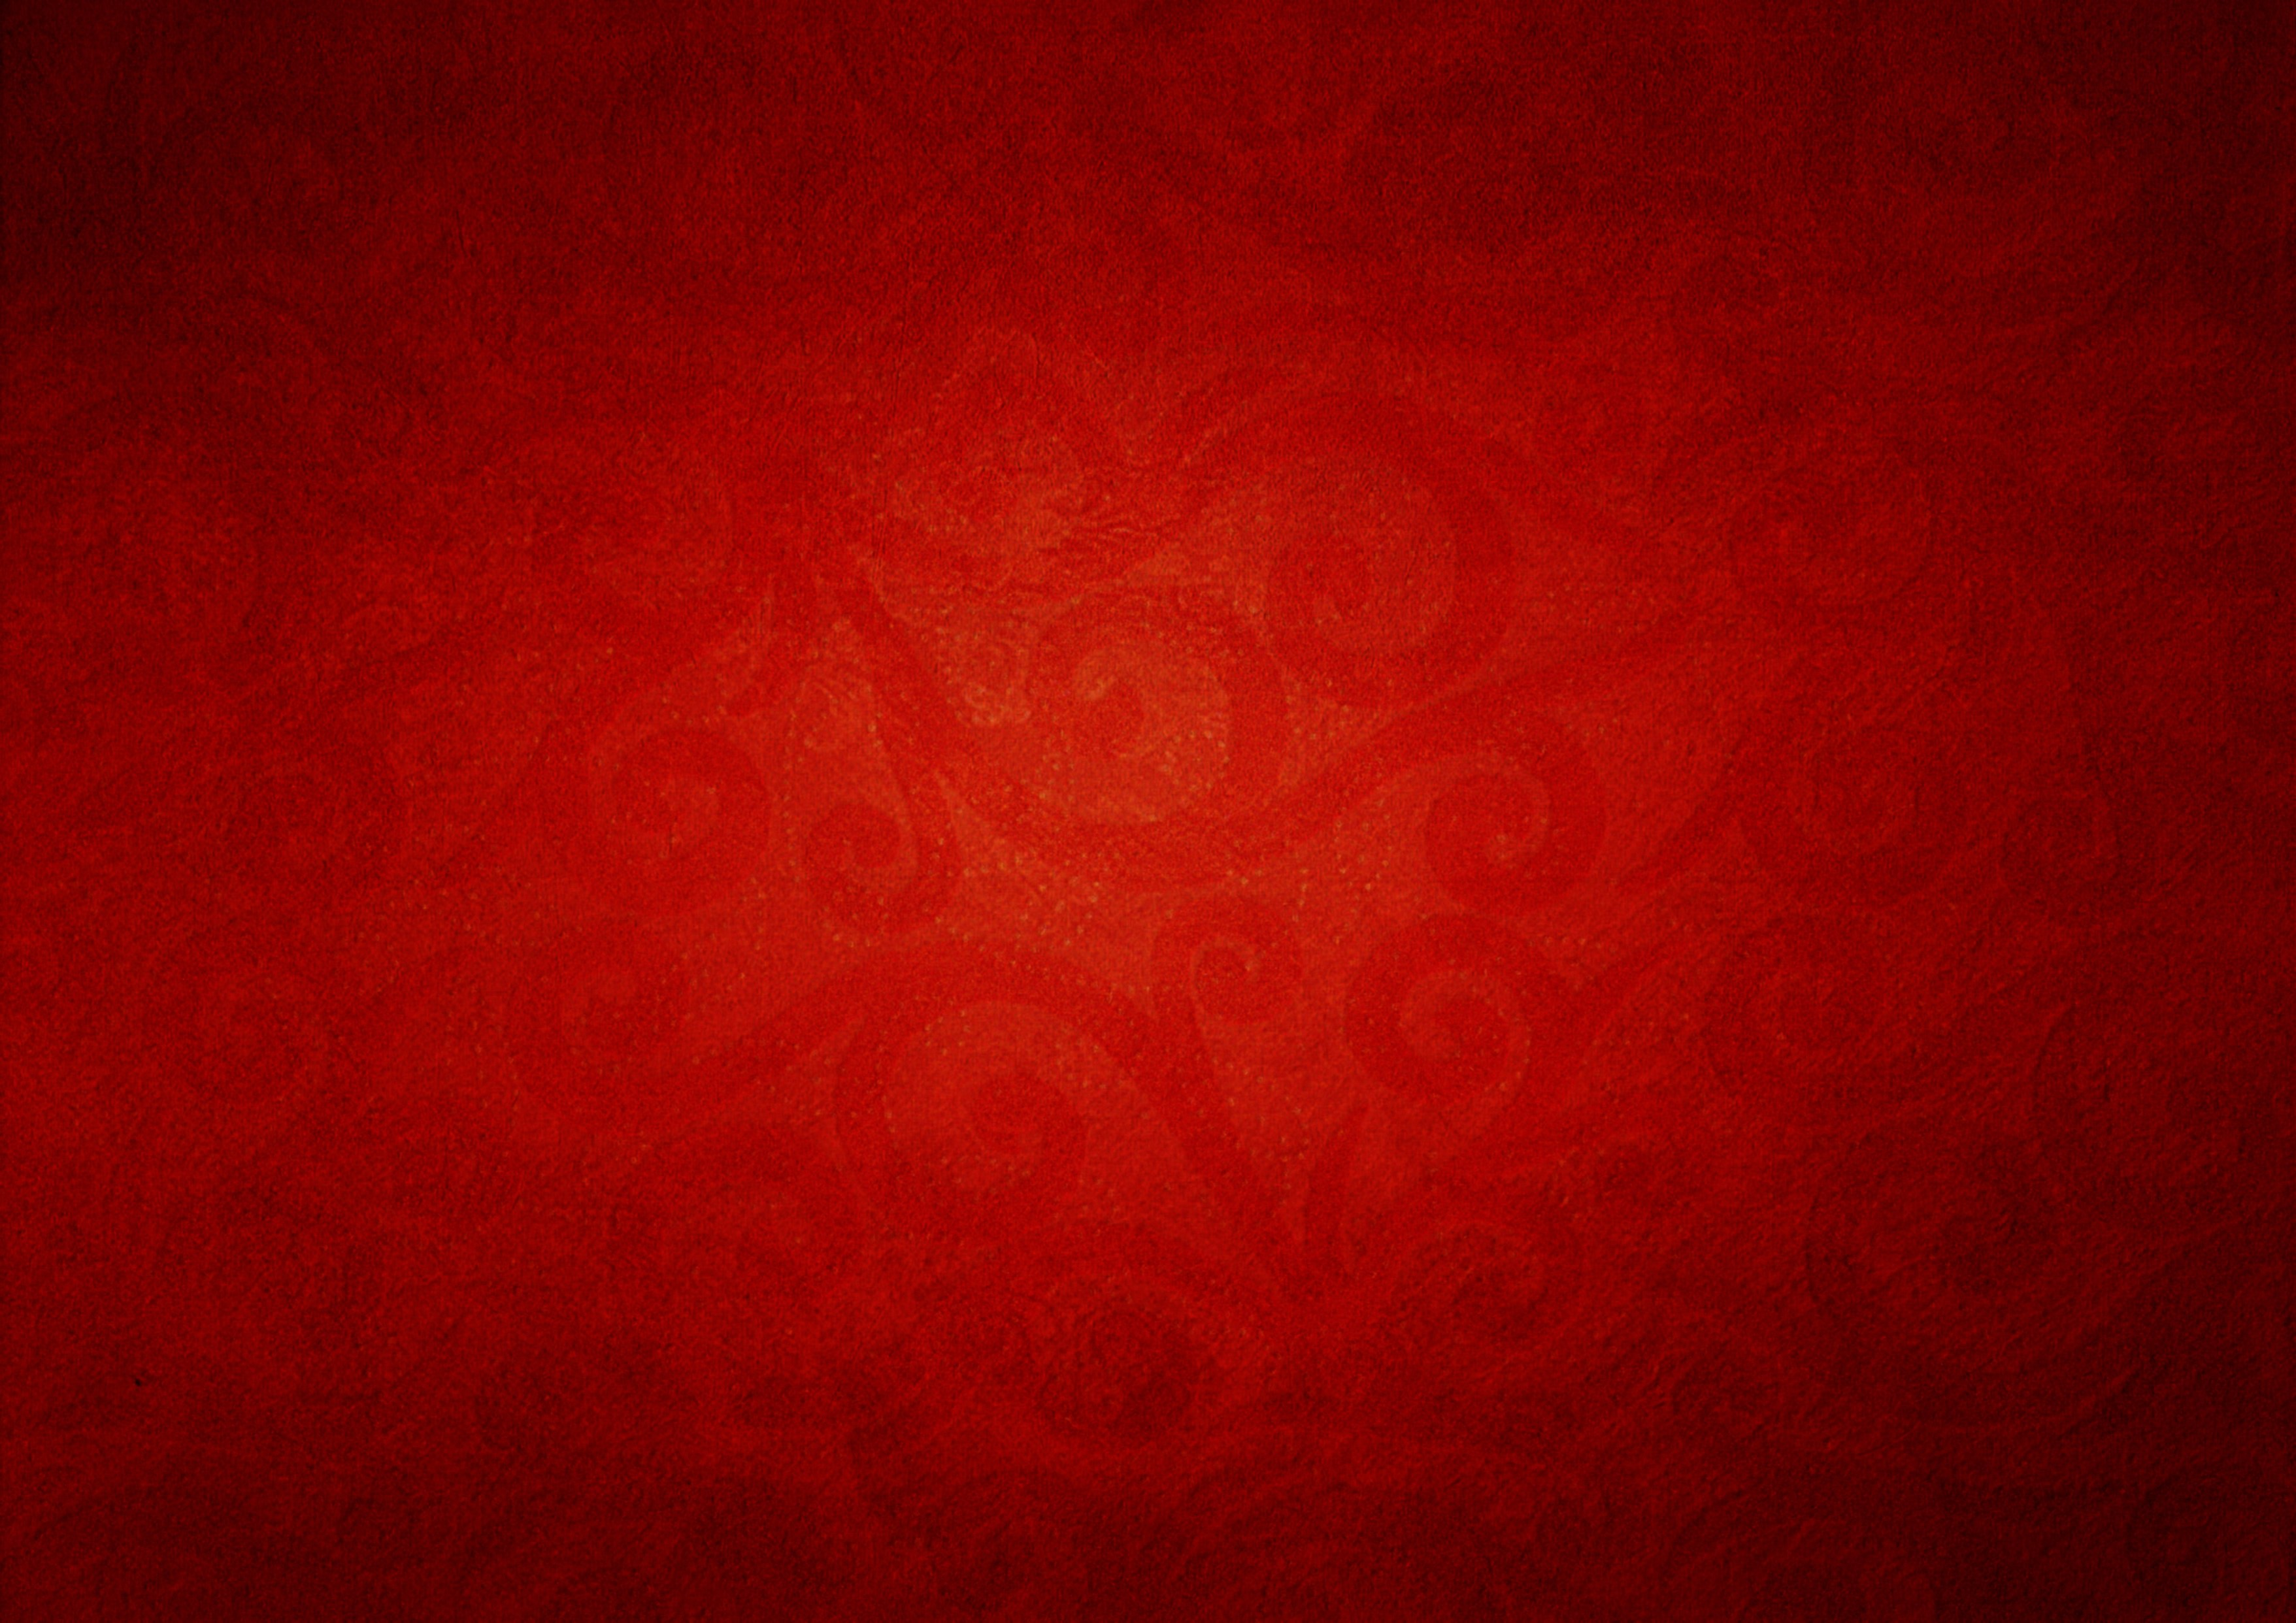 Red_Background_02